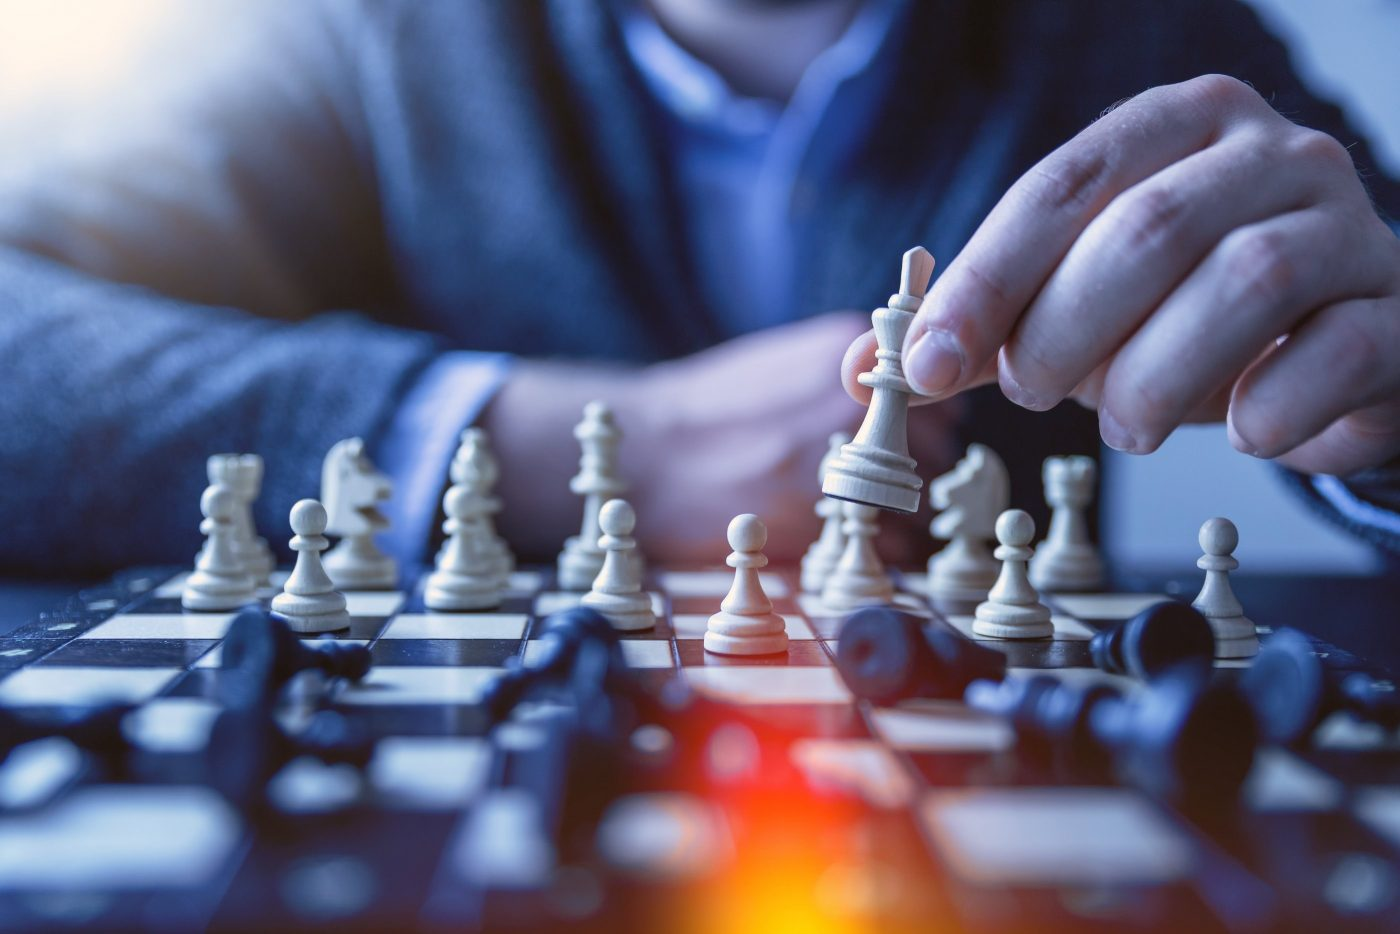 man moves bishop across chessboard